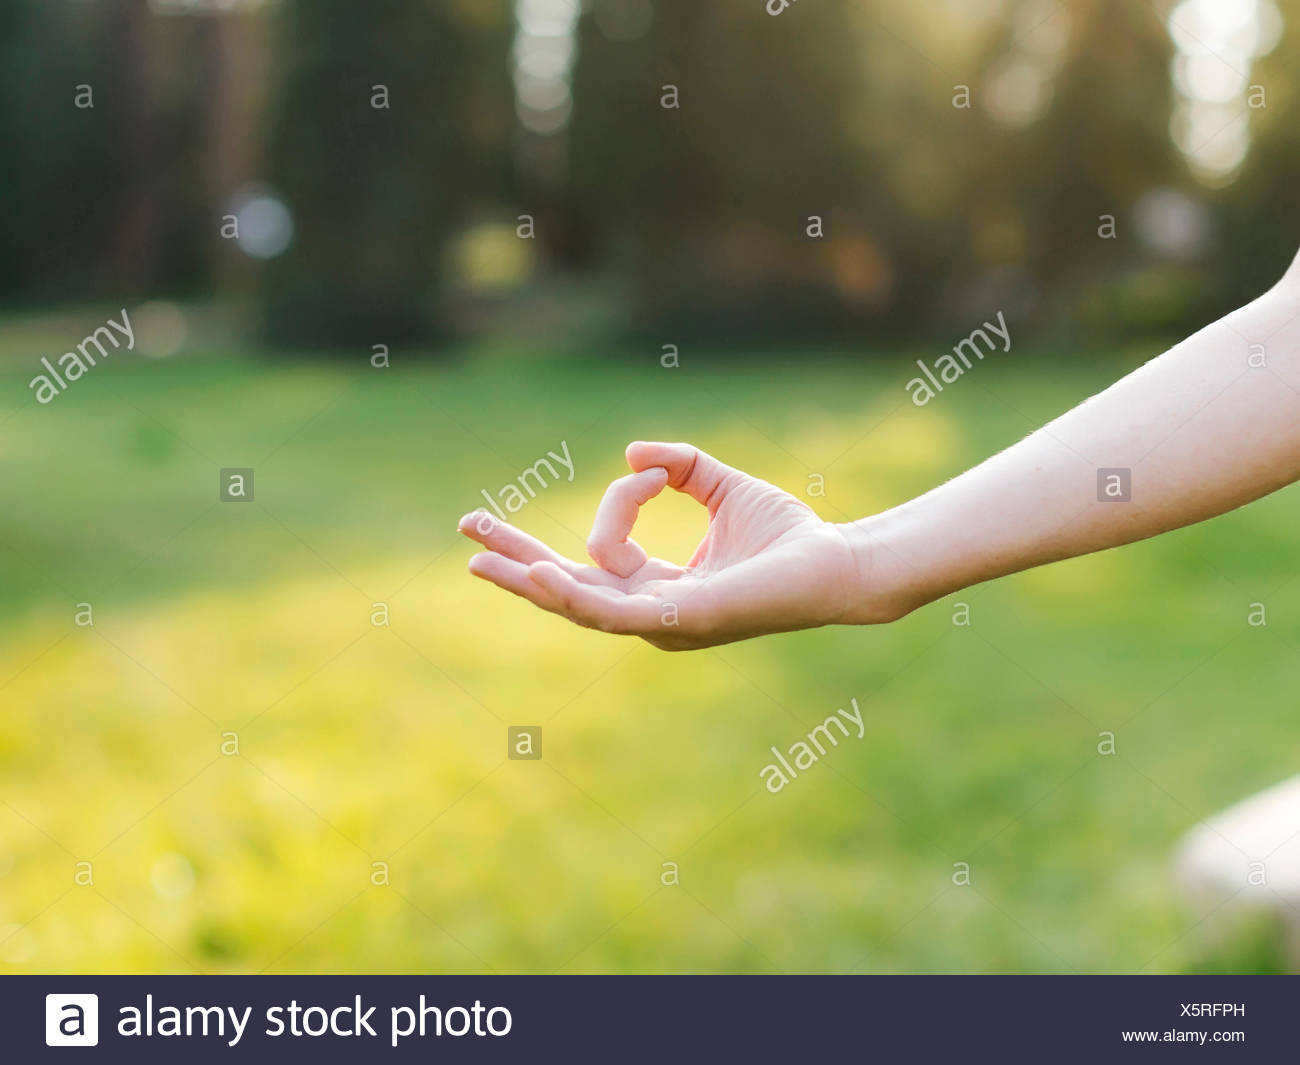 Hand of woman practicing yoga in forest - Stock Image